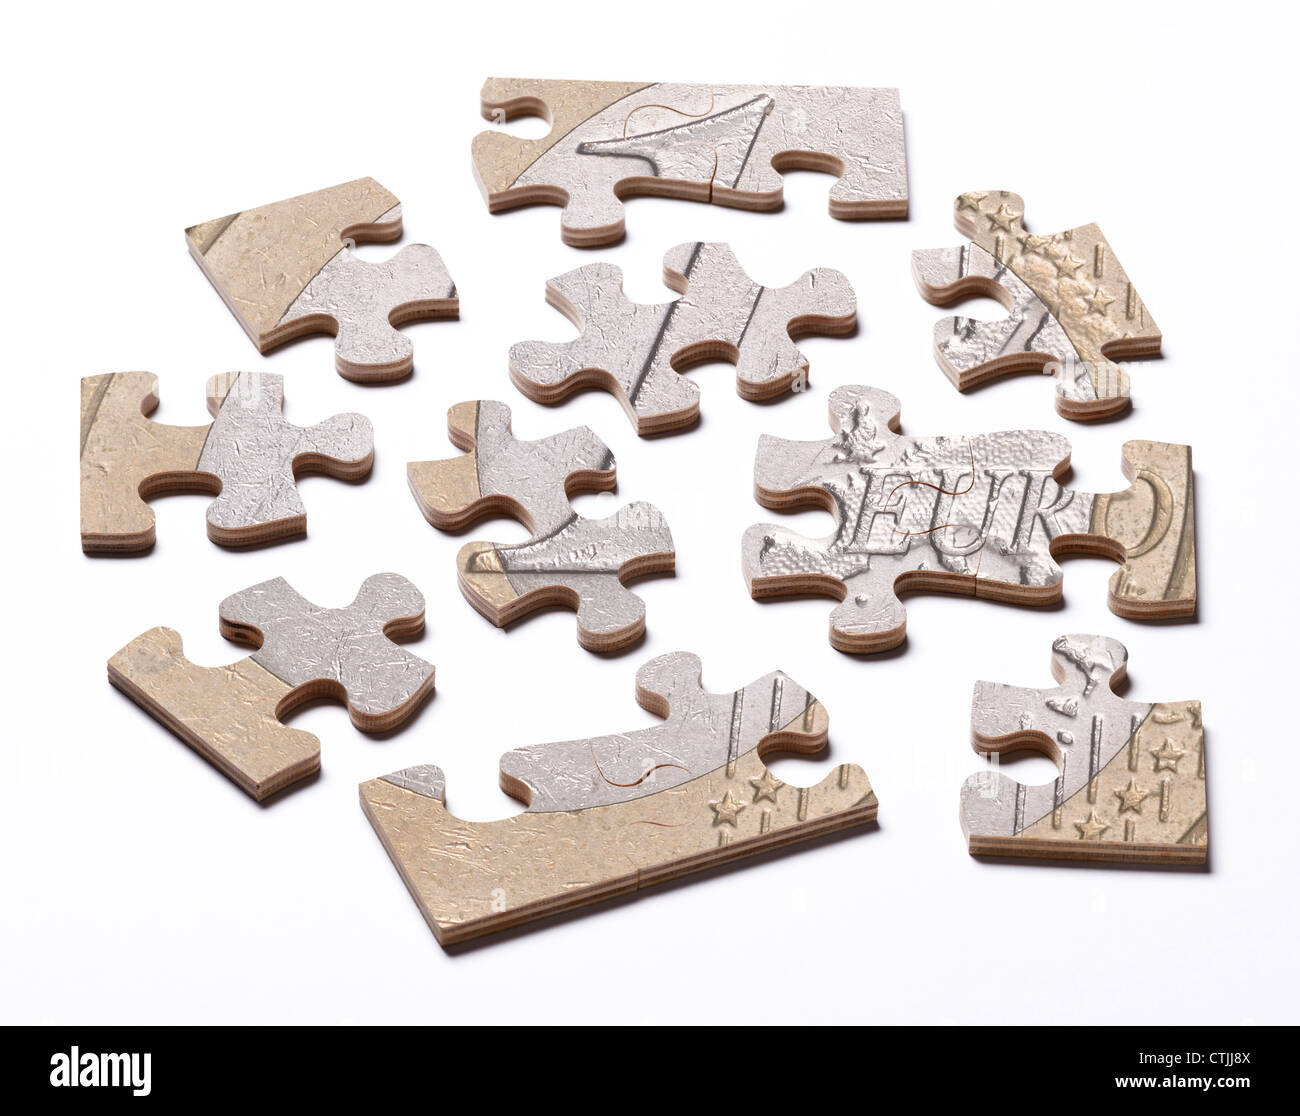 Euro coin on jigsaw pieces - Stock Image